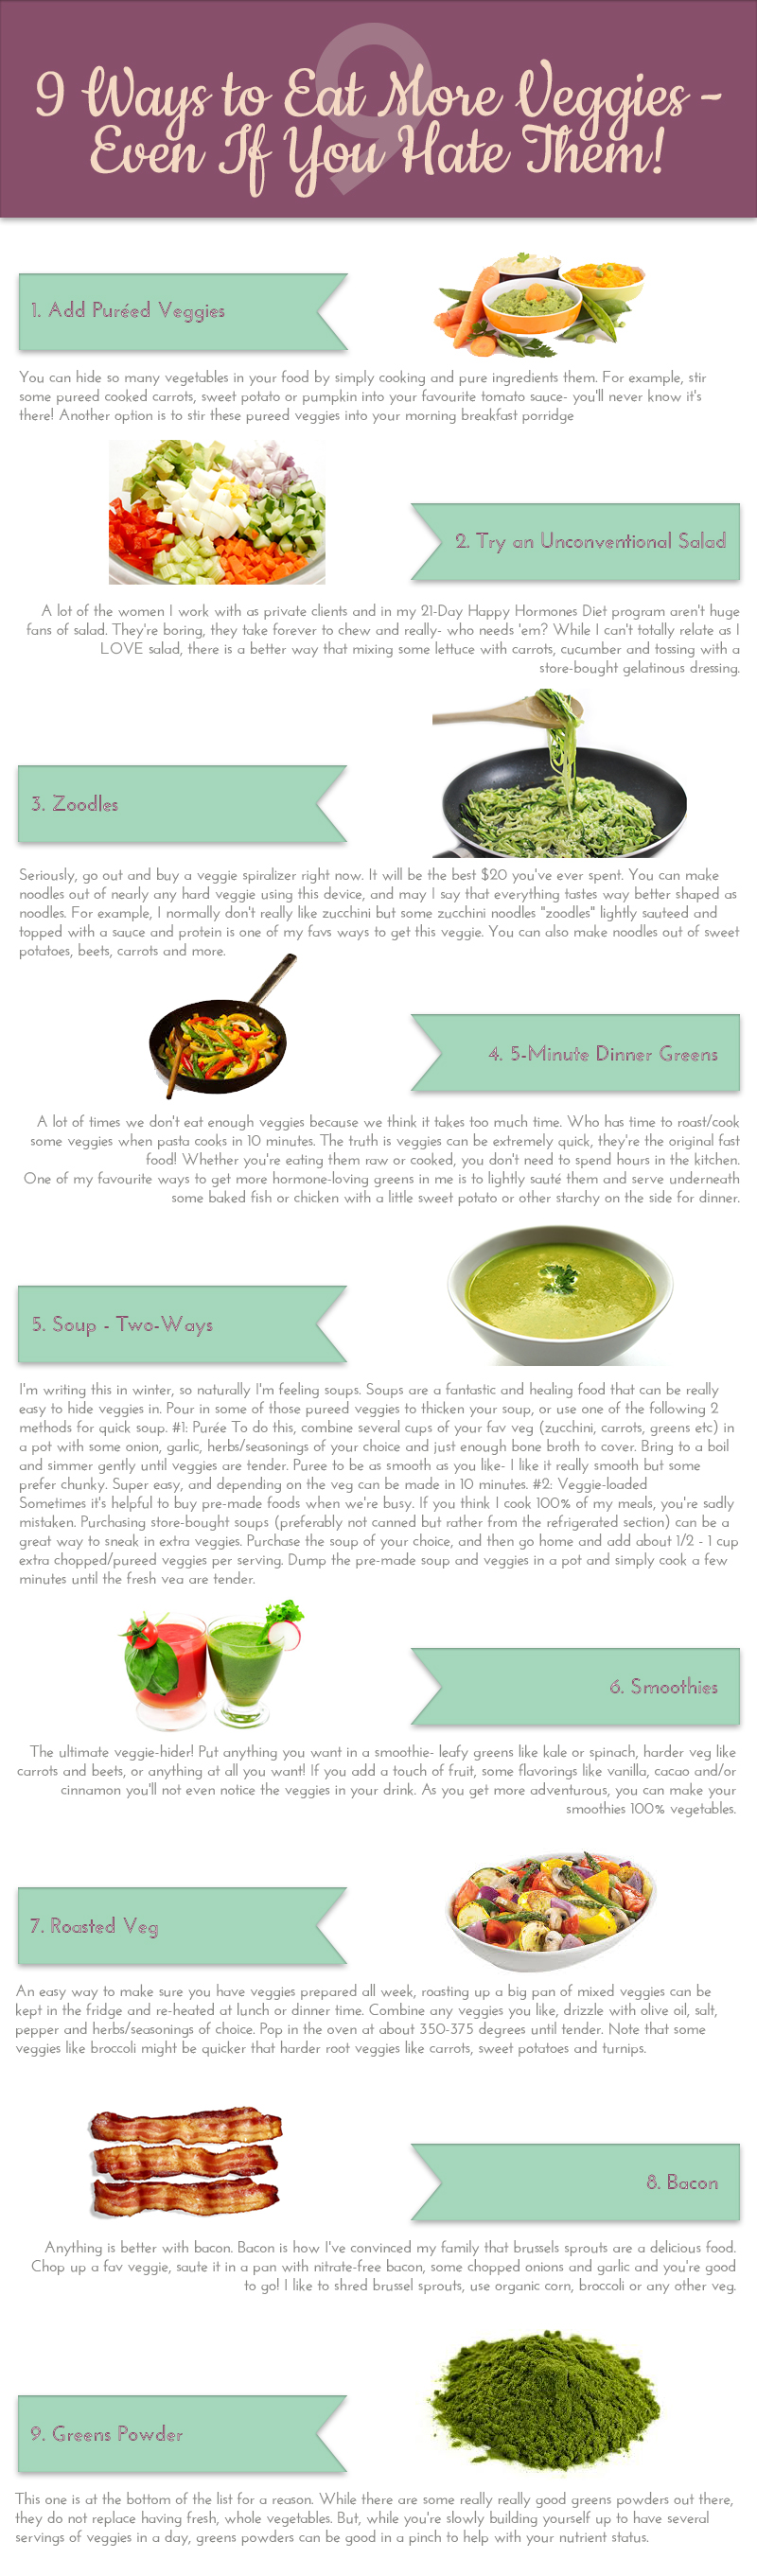 9 Ways to Eat More Veggies Even If You Hate Them! | Infographic | The Hormone Diva